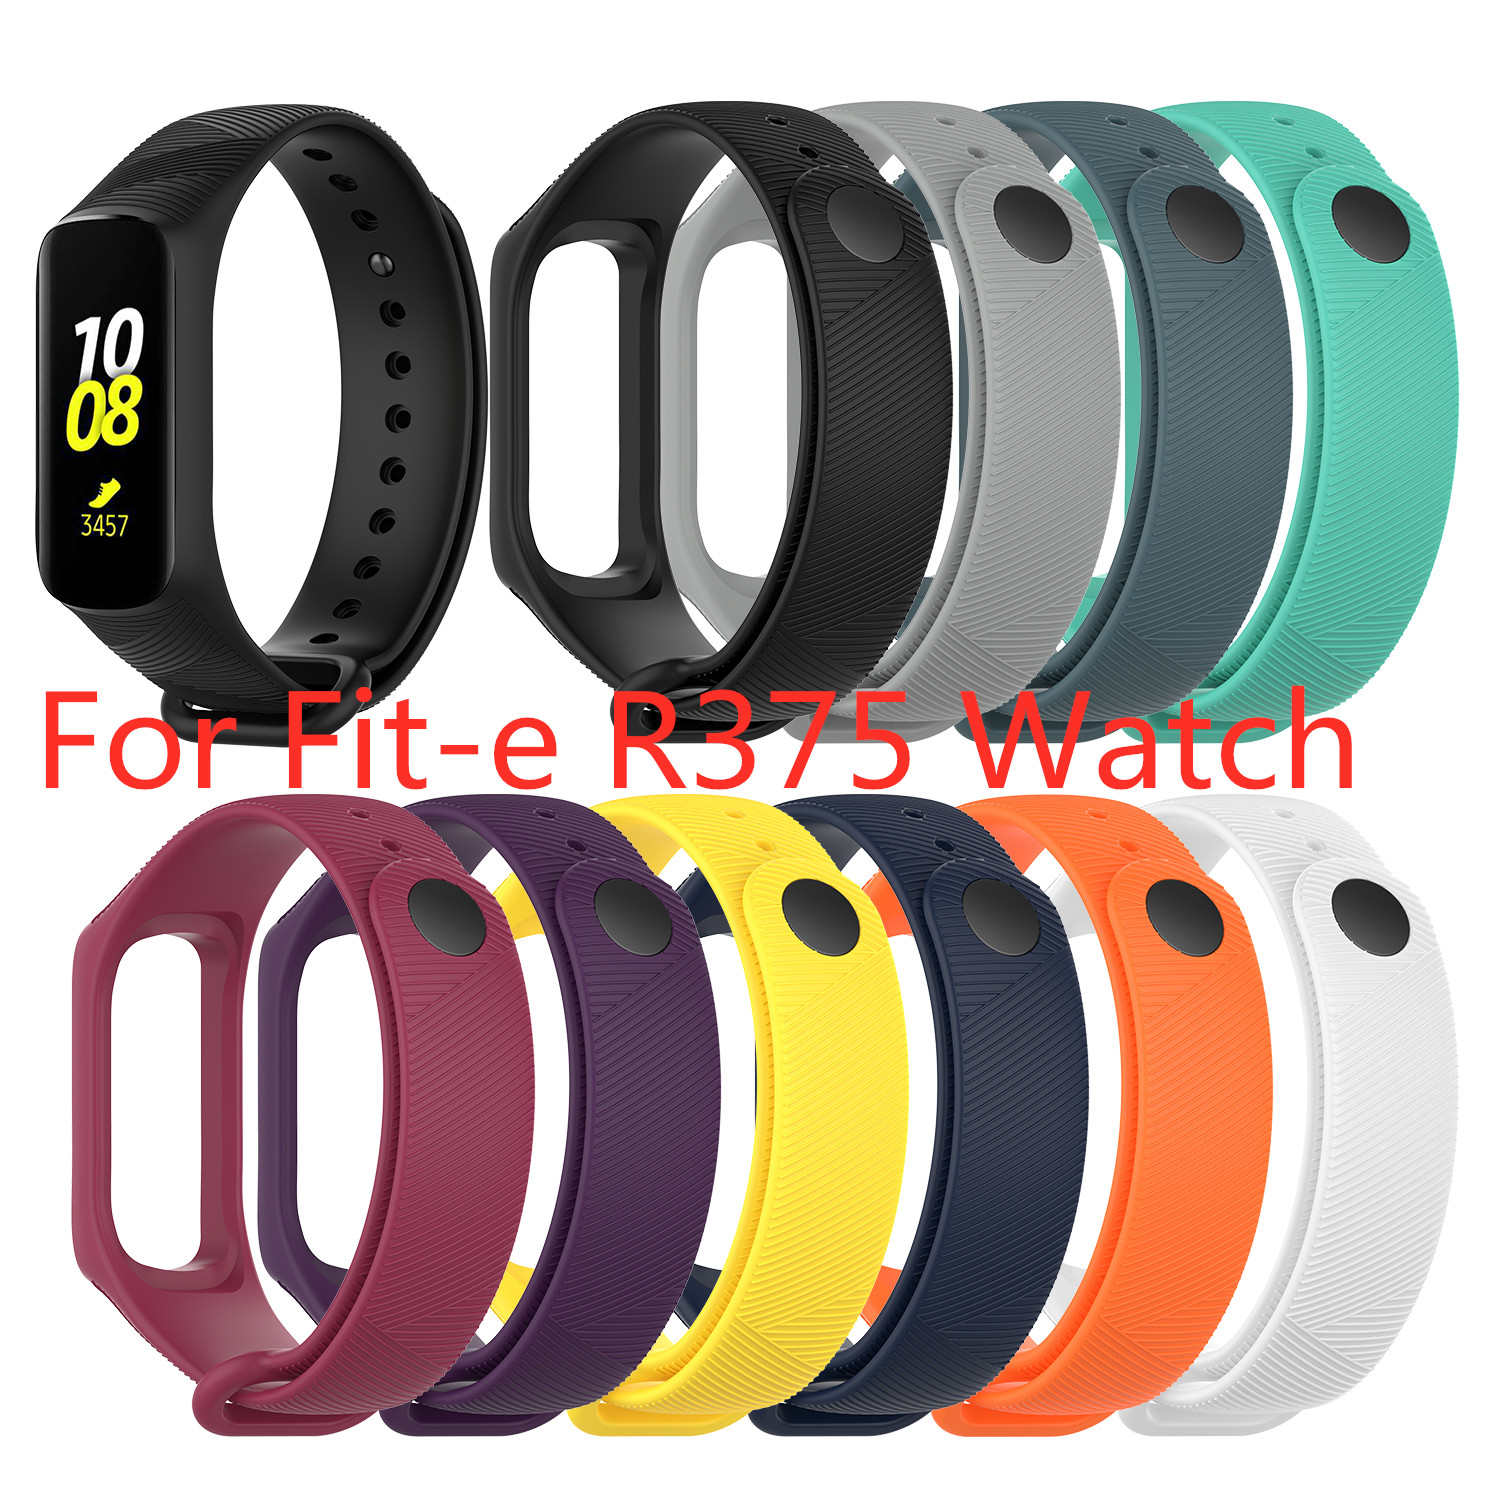 Multicolor Silicone Watch Strap Wrist Band Strap For Samsung Galaxy Fit-e R375 Smart Bracelet Replacement Band Strap Accessories